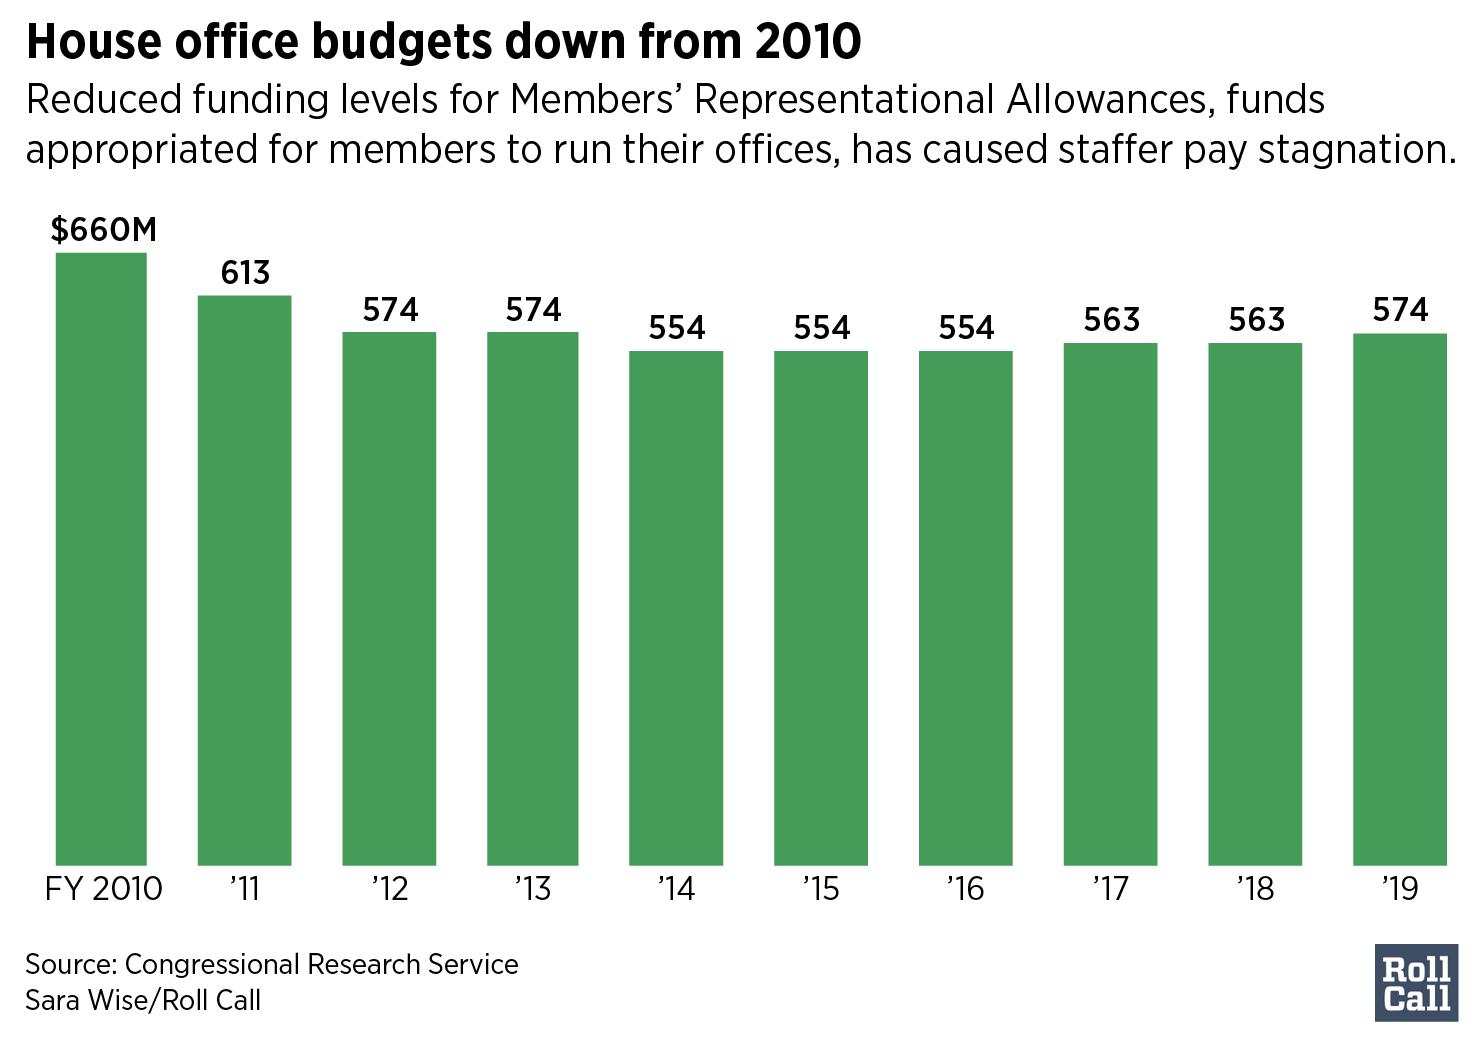 House office budgets down from 2010